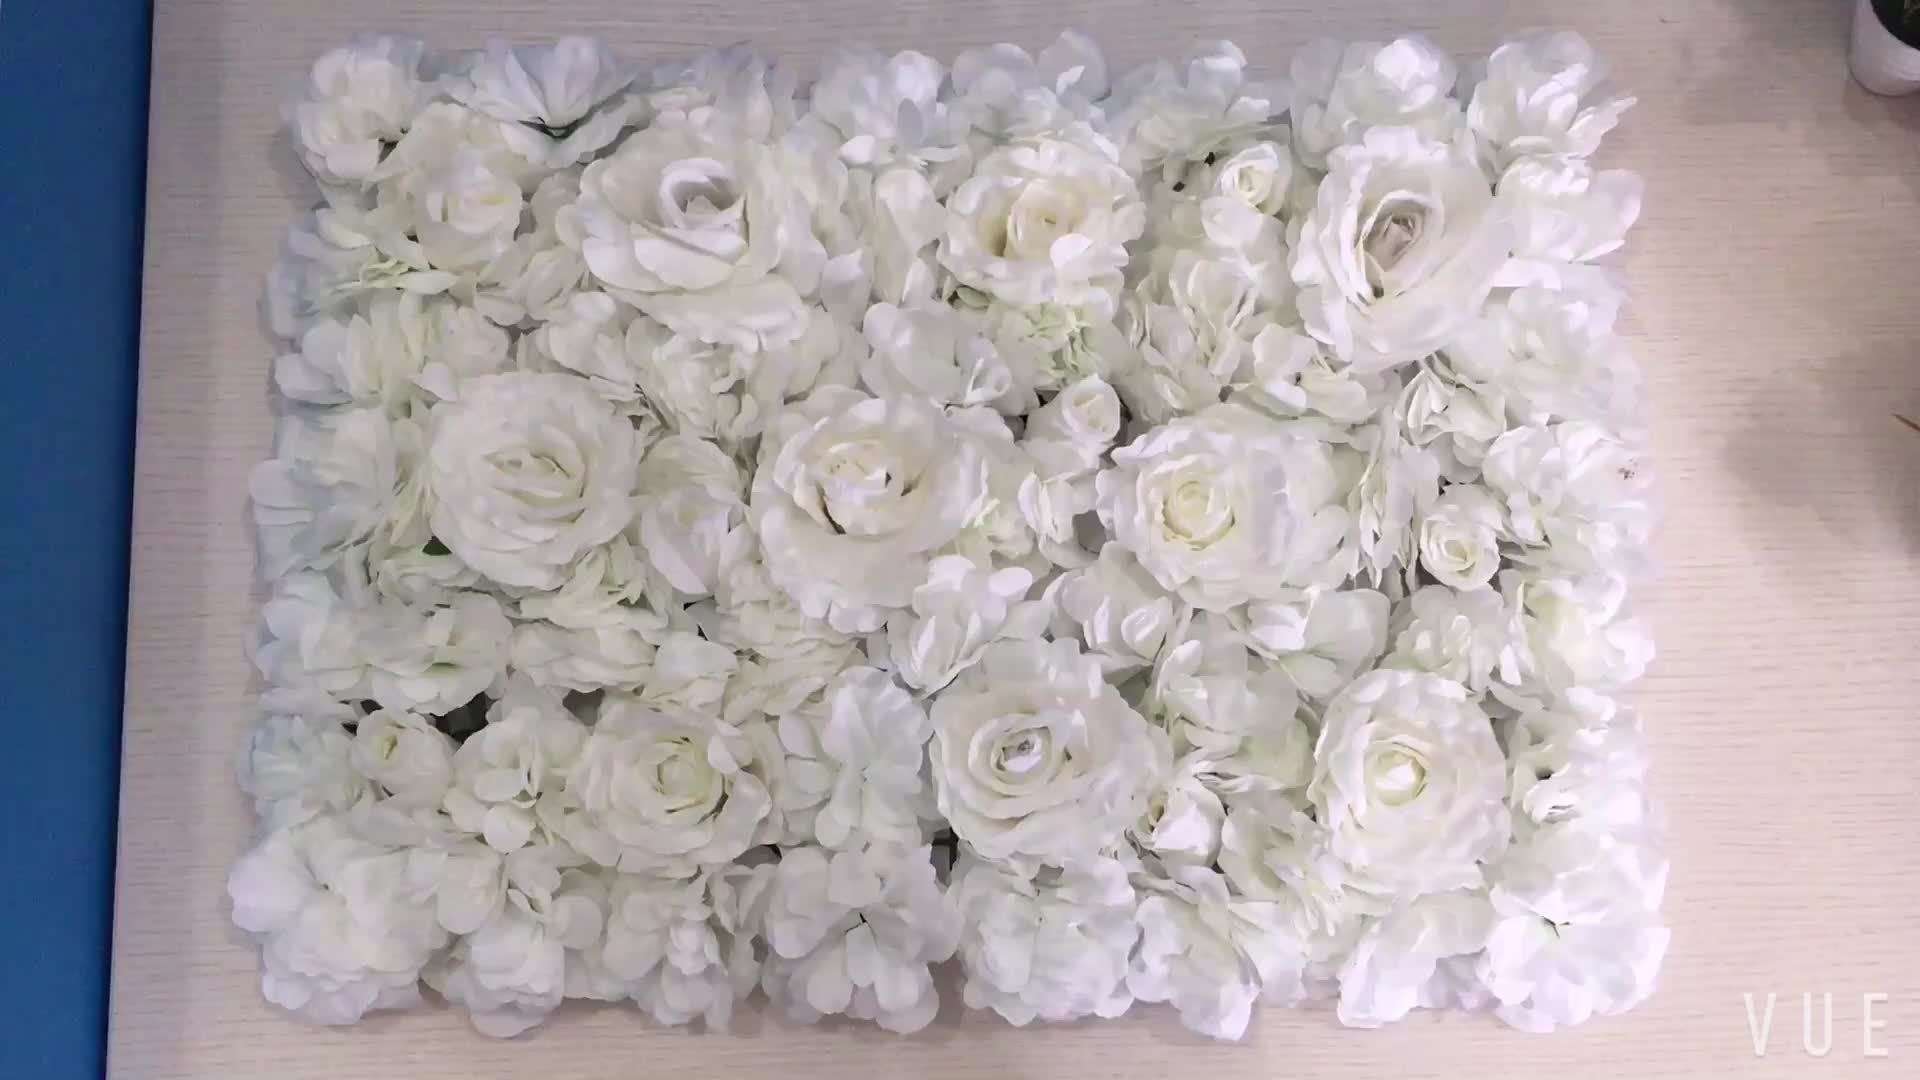 ZERO Silk Artificial Rose Flower Wall Flower Mat Fabric Hydrangea Artificial Flower Wall